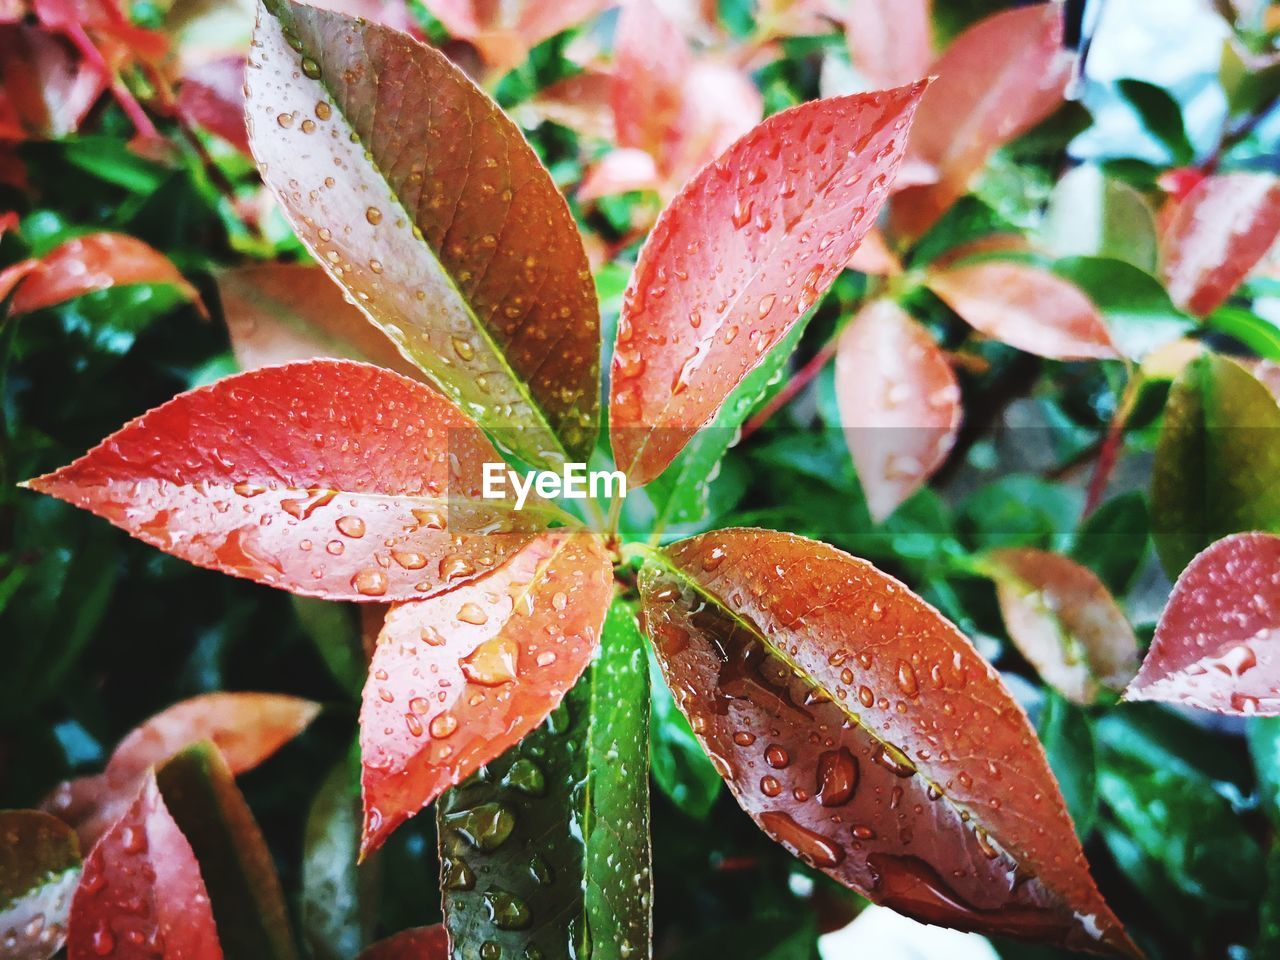 drop, wet, growth, leaf, plant part, close-up, water, plant, no people, nature, freshness, beauty in nature, rain, focus on foreground, day, red, backgrounds, full frame, raindrop, leaves, outdoors, rainy season, dew, purity